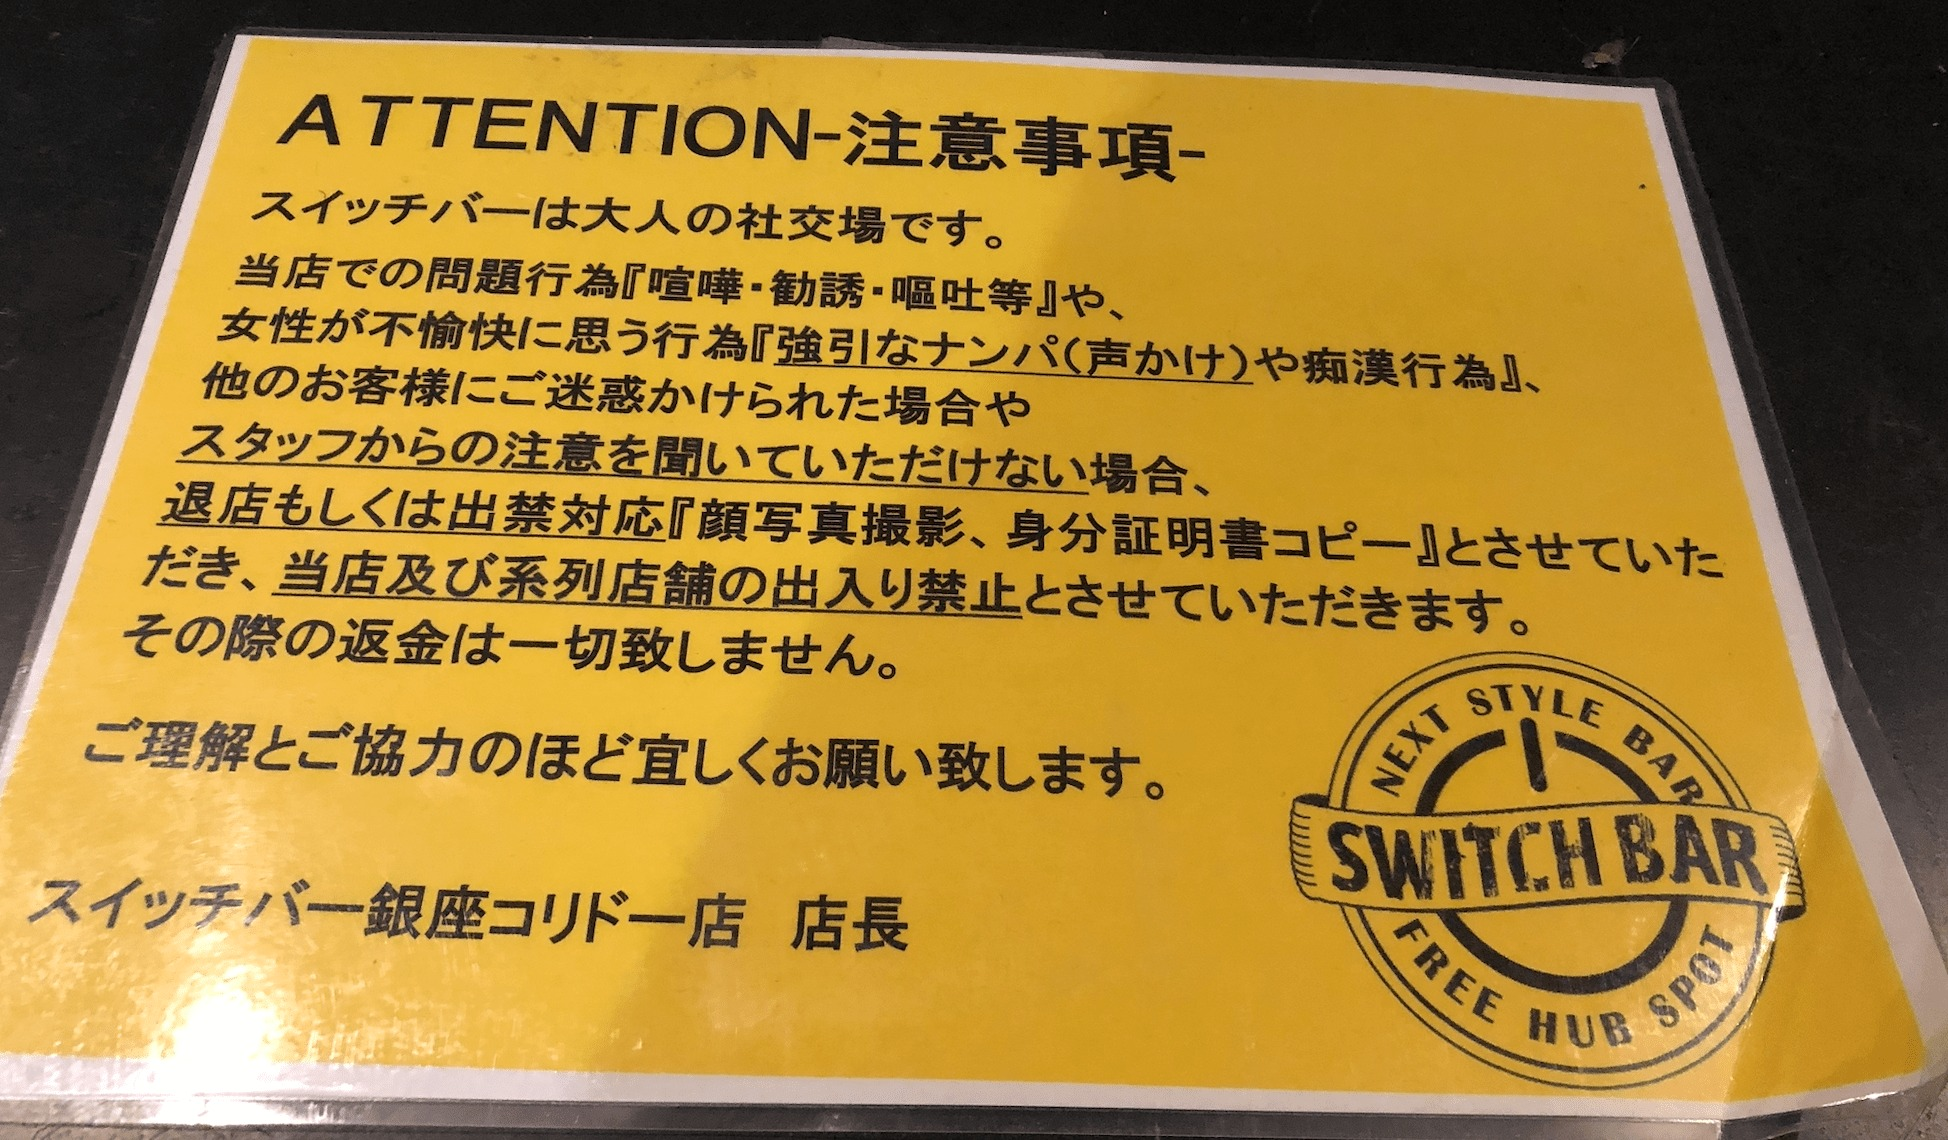 SWITCH BAR RULE